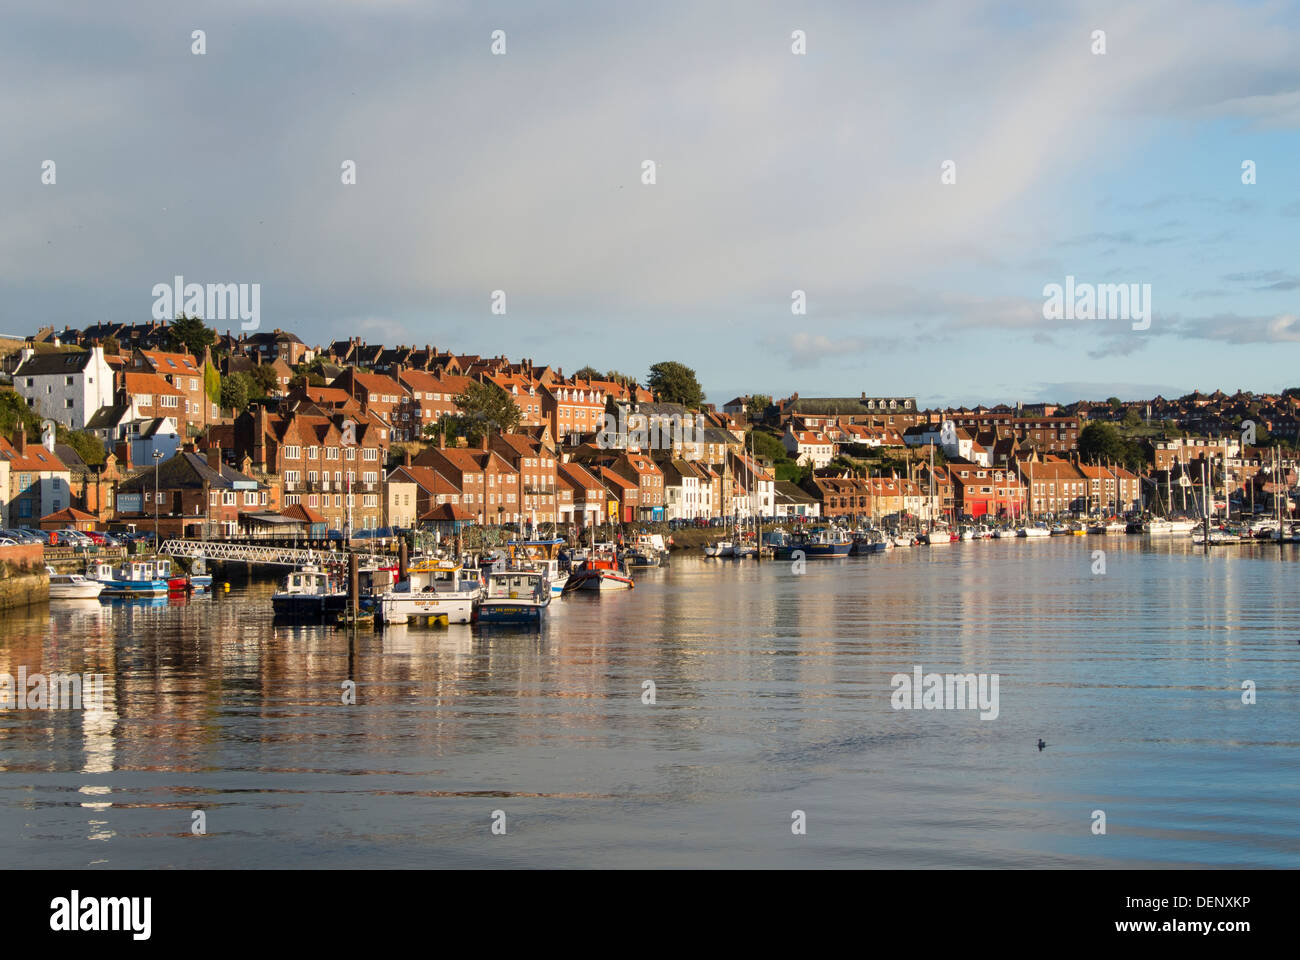 View of Whitby Harbour, the mouth of the River Esk. - Stock Image